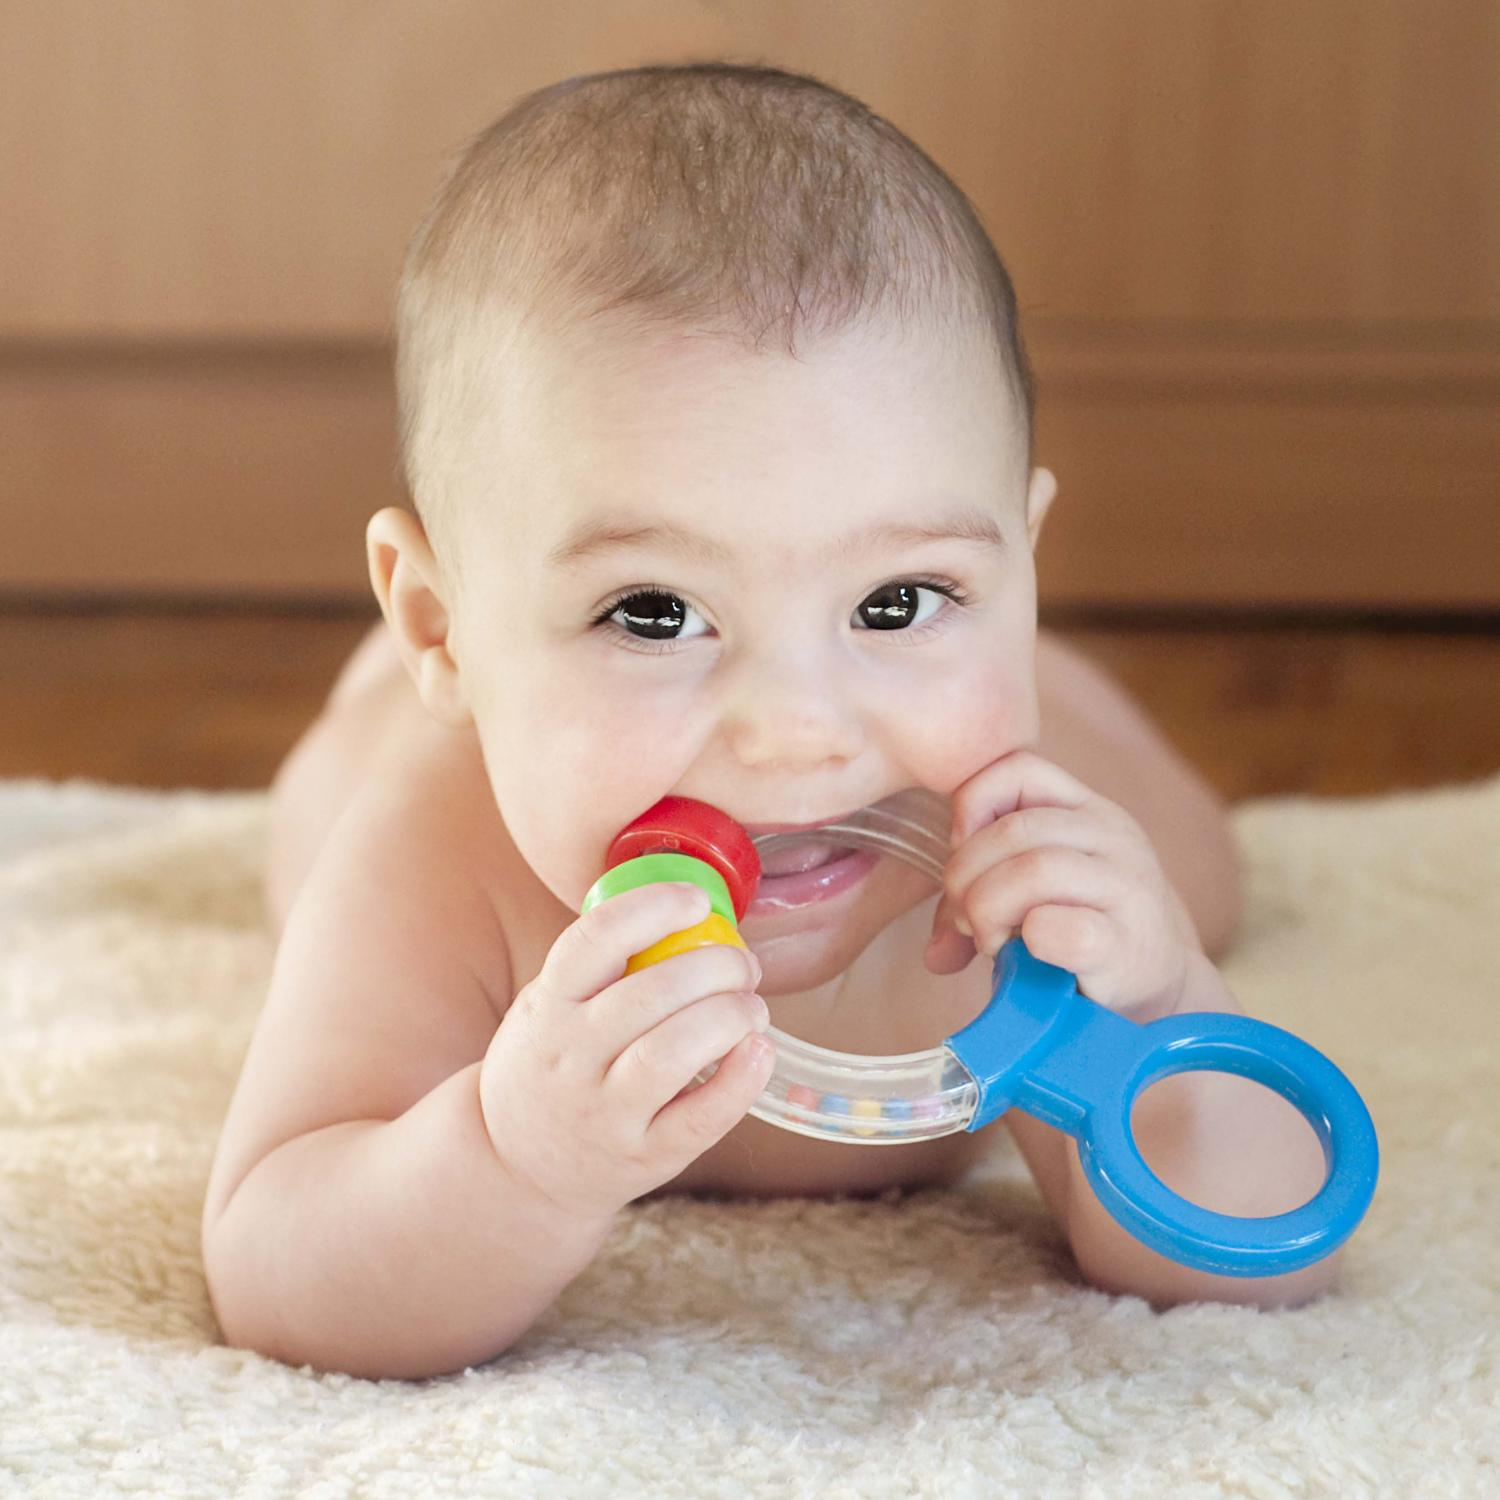 Dientes Bebe 4 Meses Guide To Teething Symptoms And Remedies Parenting